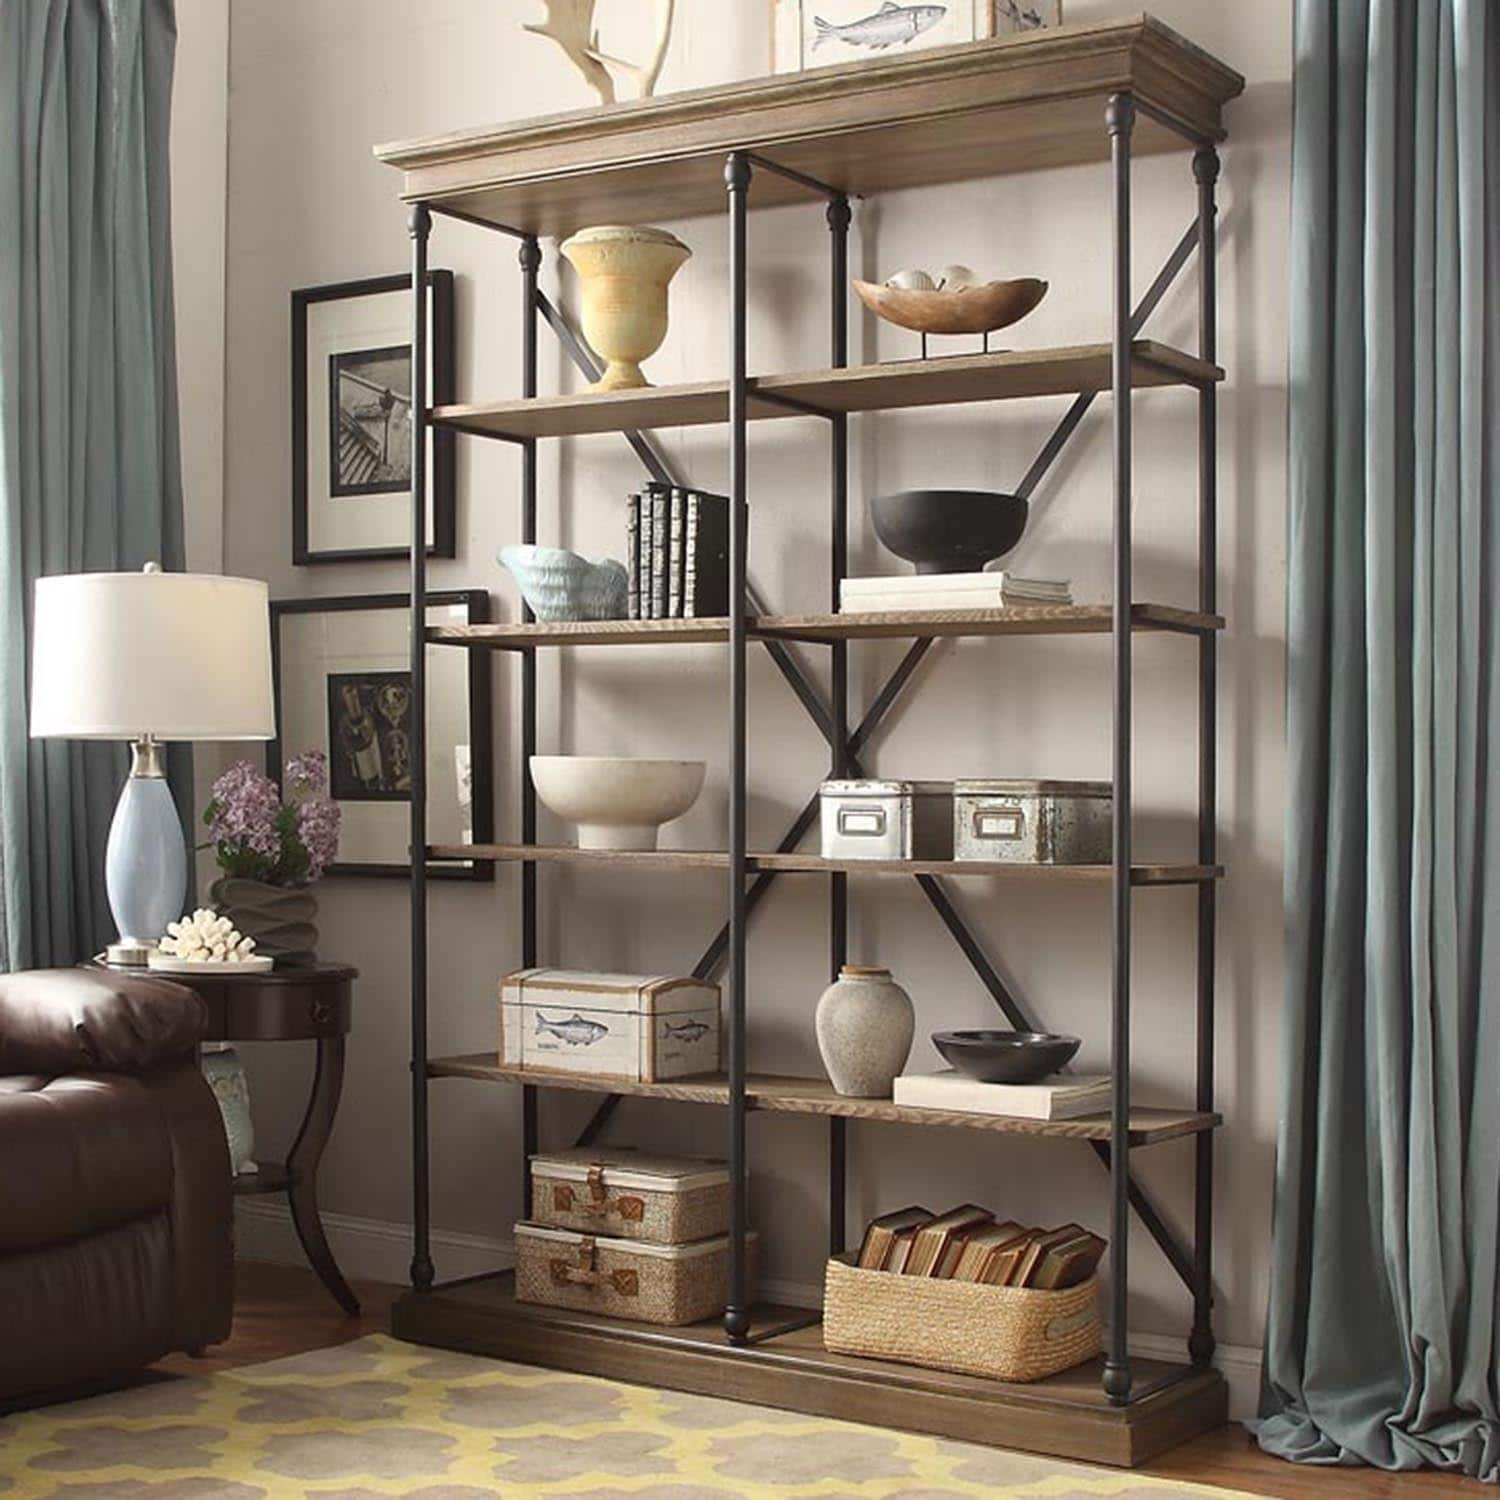 Barnstone Cornice Double Shelving Bookcase by iNSPIRE Q Artisan - Free  Shipping Today - Overstock.com - 17080109